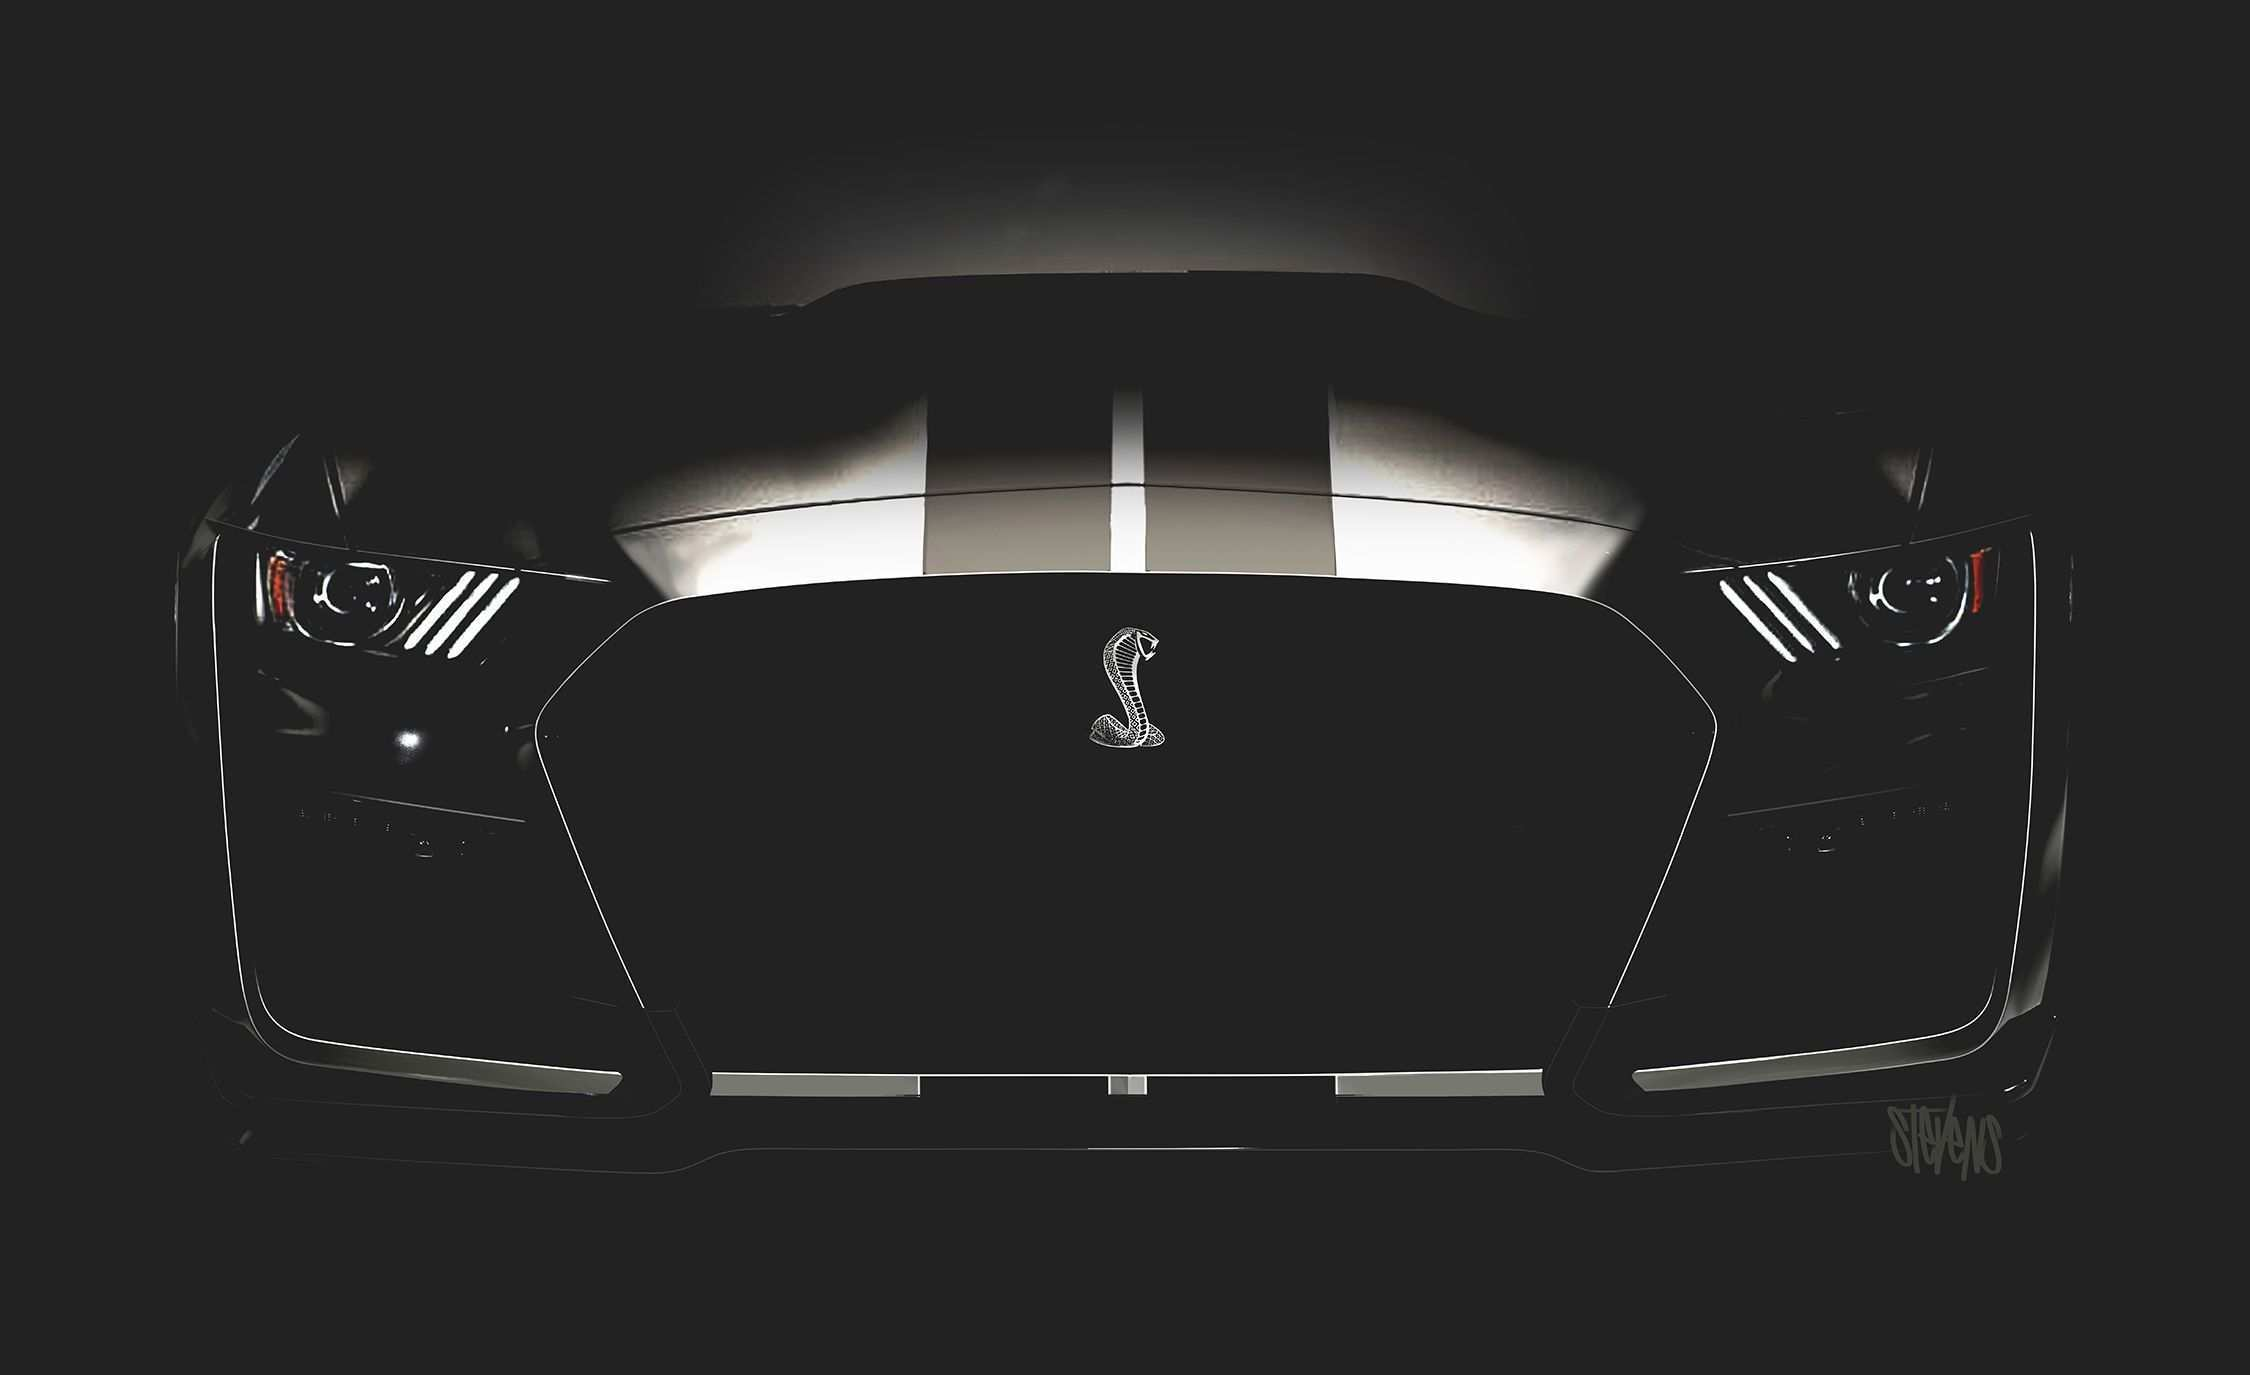 40 New 2020 Ford Mustang Shelby Gt 350 Performance with 2020 Ford Mustang Shelby Gt 350